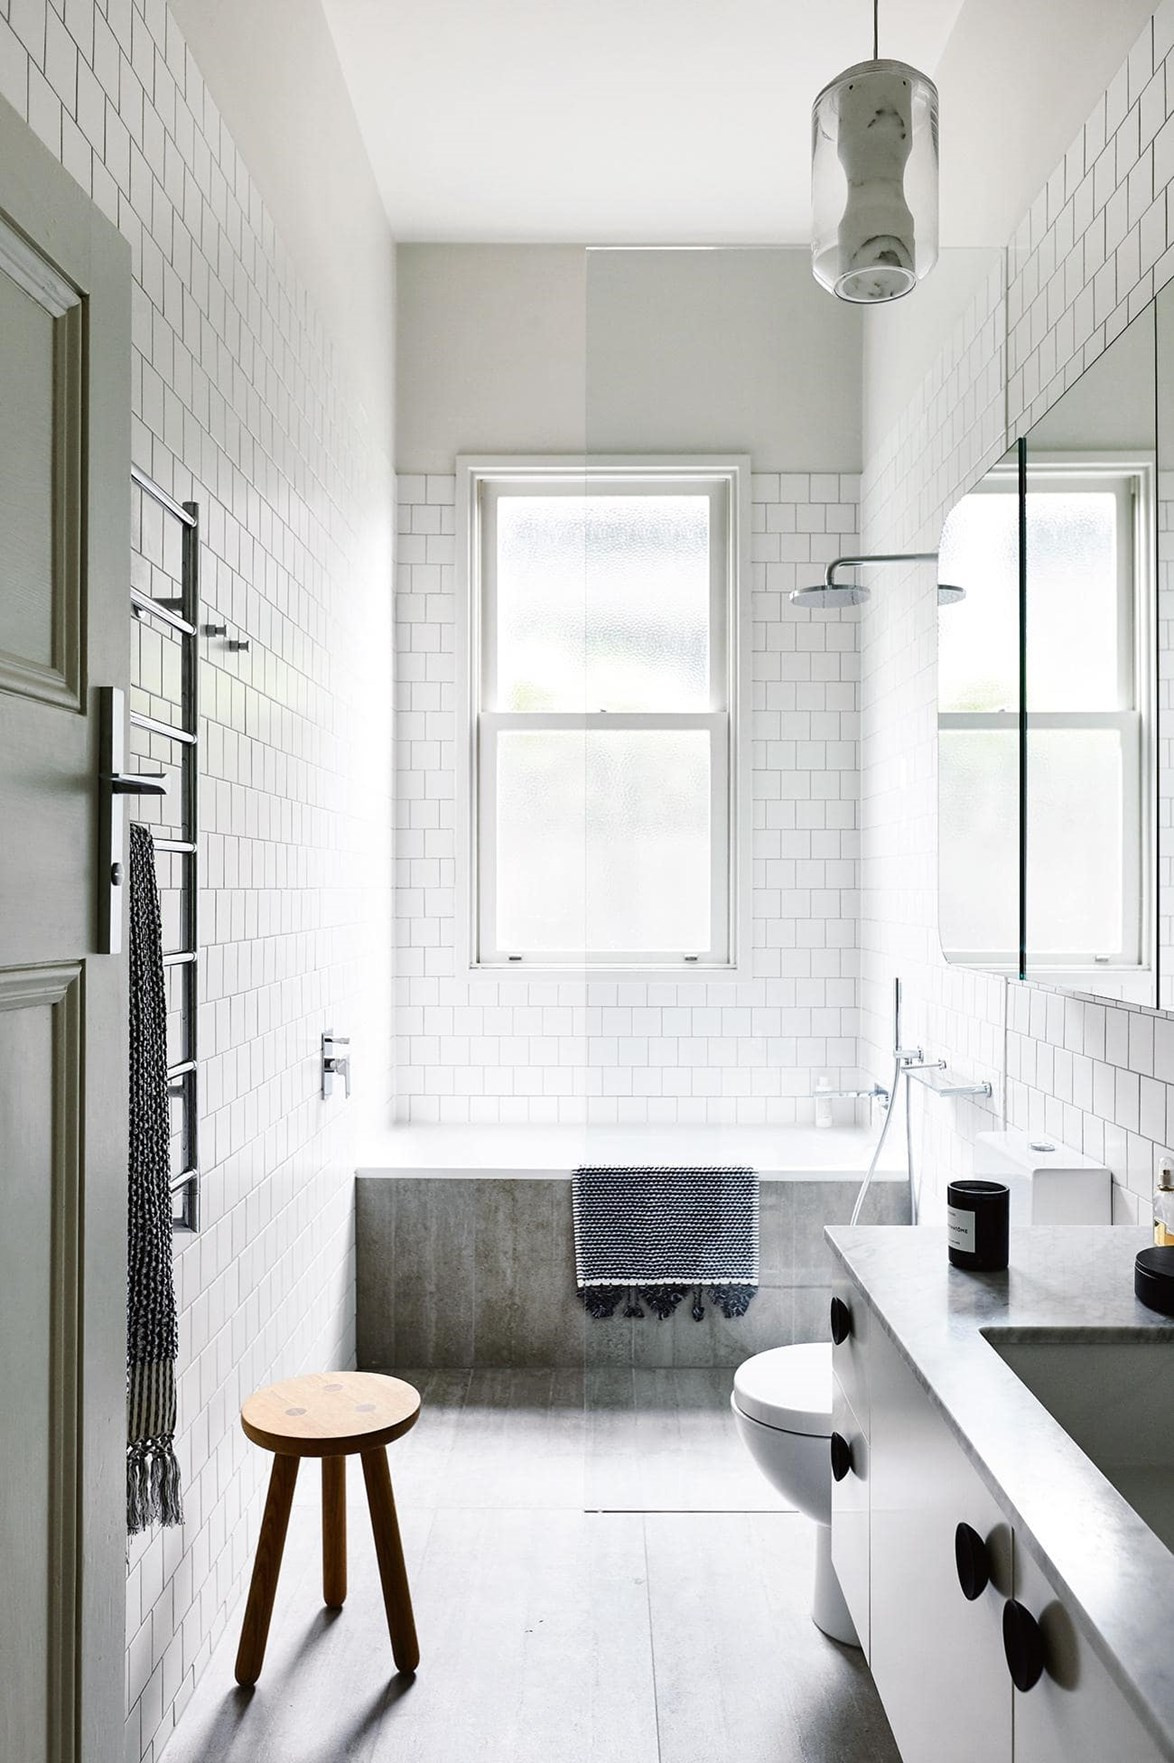 Tonal grey flooring helps to ground this narrow bathroom with high-ceilings. Classic subway tiles are a nod to the home's Edwardian heritage. *Photo: Derek Swalwell / Styling: Bek Sheppard*